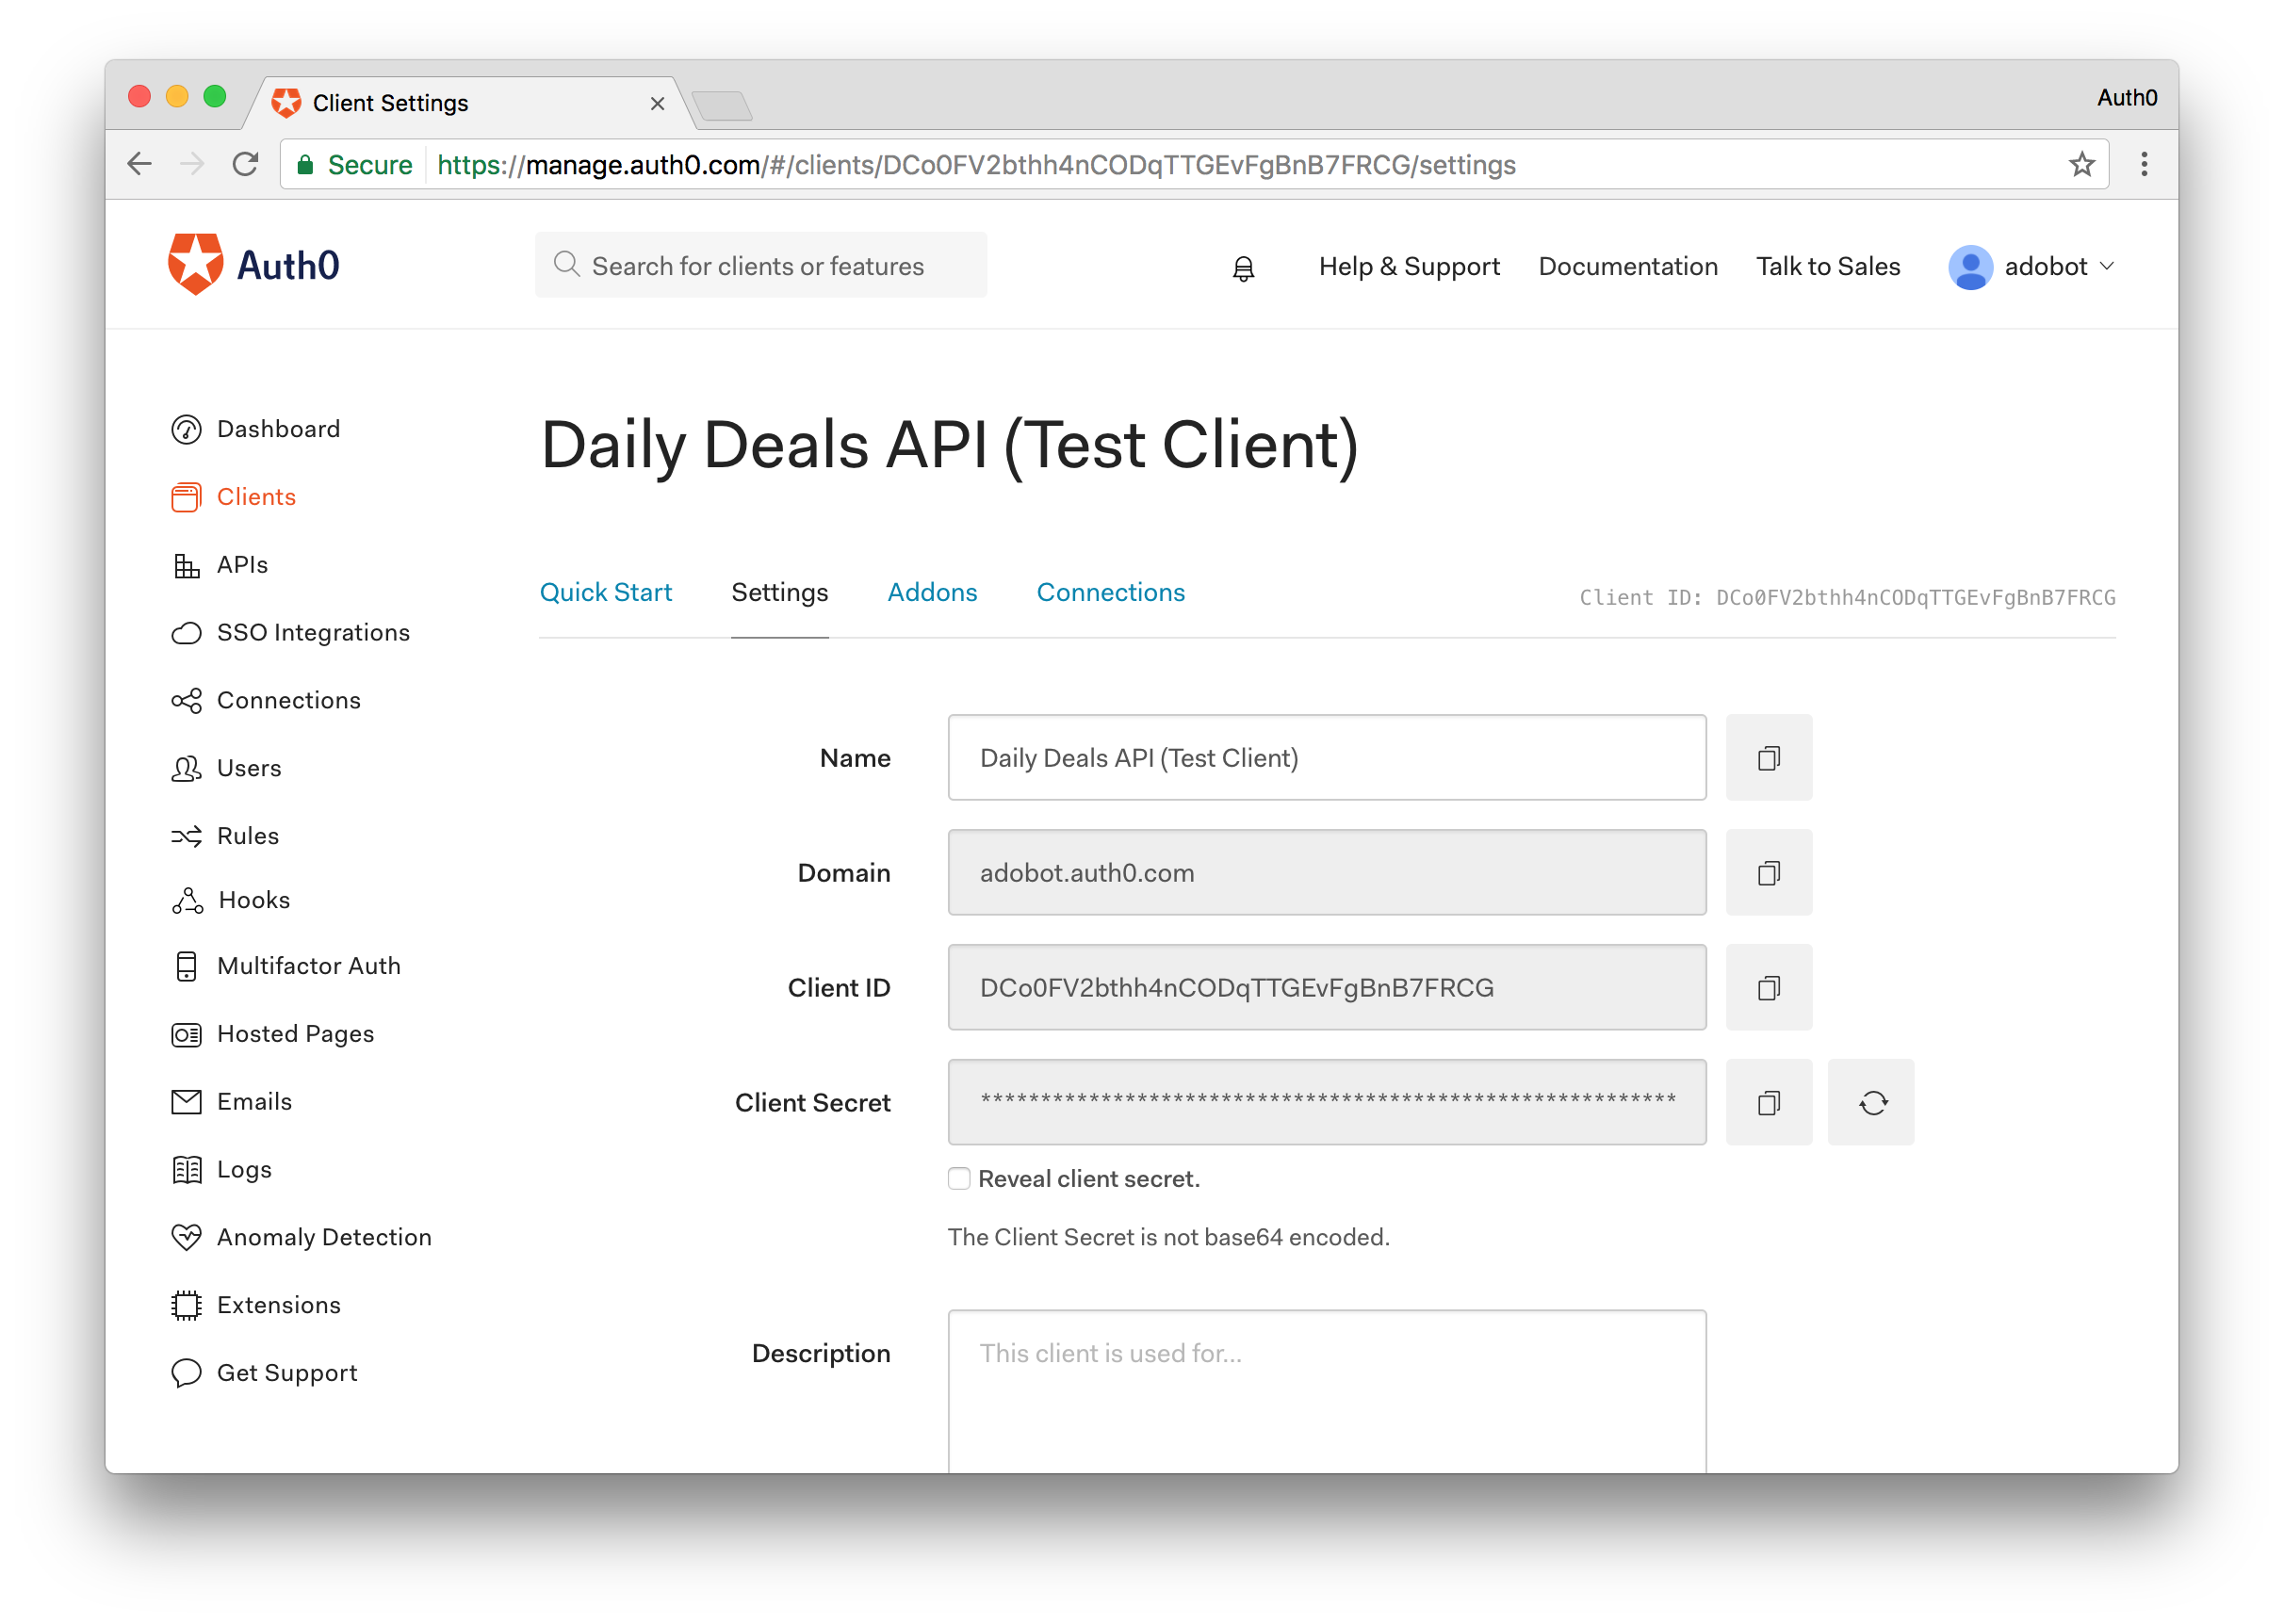 Daily Deals API Test Client